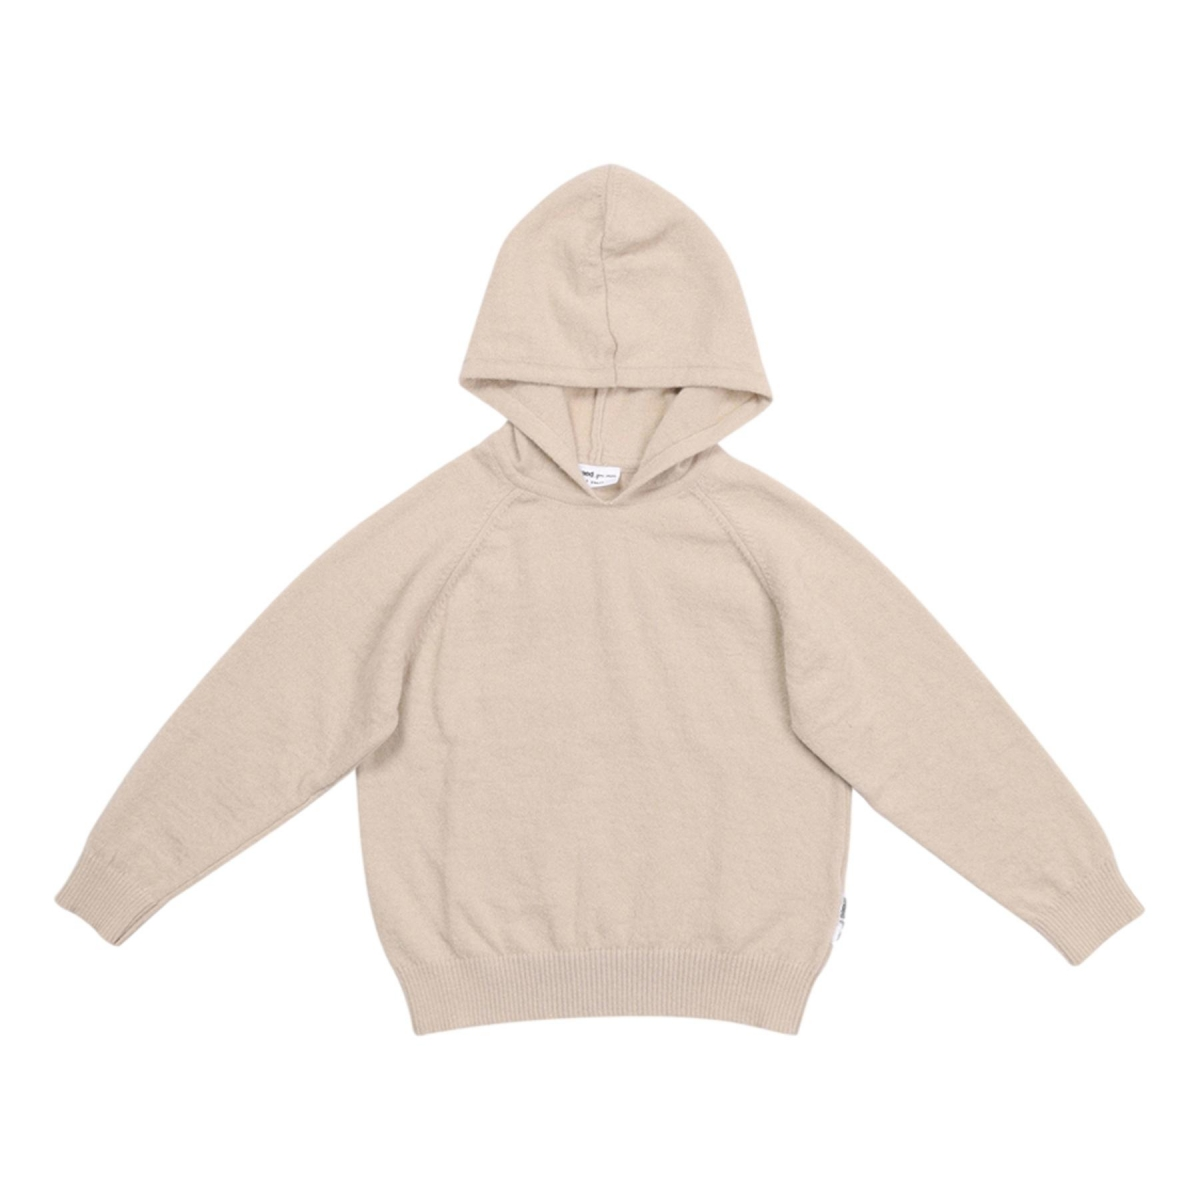 Maed for mini - Knit hoodie luxurious lynx - 1